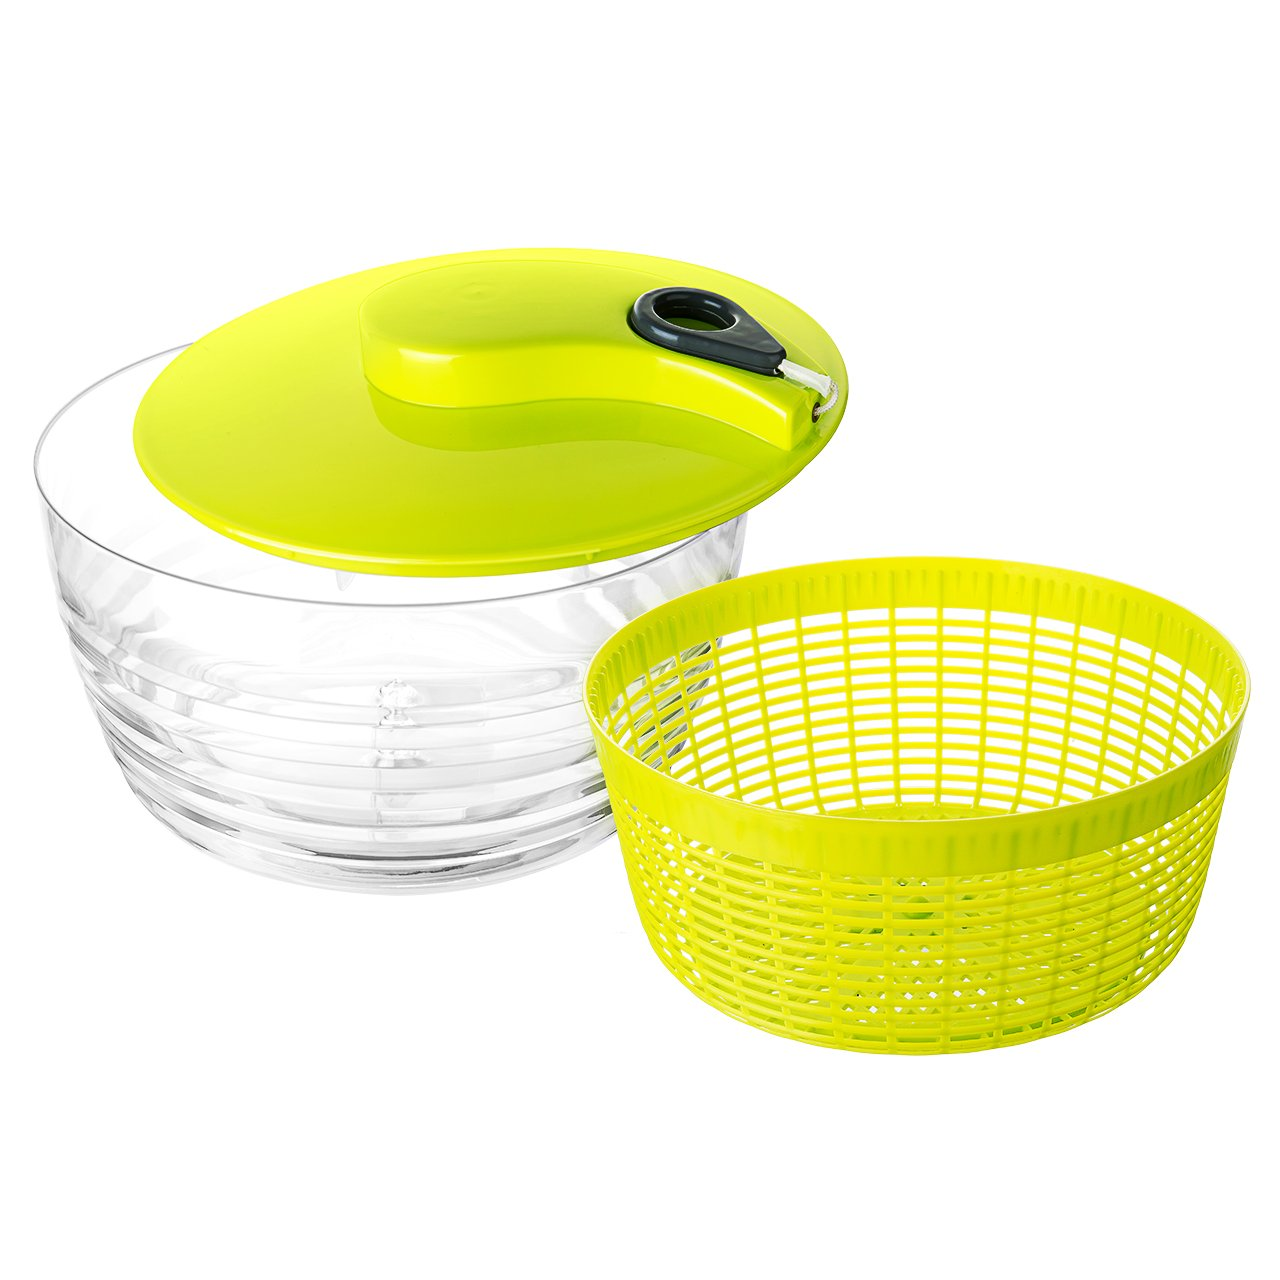 Pictek Salad Spinner, [Multi-Use] Compact Kitchen Aid Water Filting Basket For Drying Salad, Vegetables, Fruit, Pasta, etc with Durable Top of the Line, Large Size, Green YTGECP048AG-CAAA1